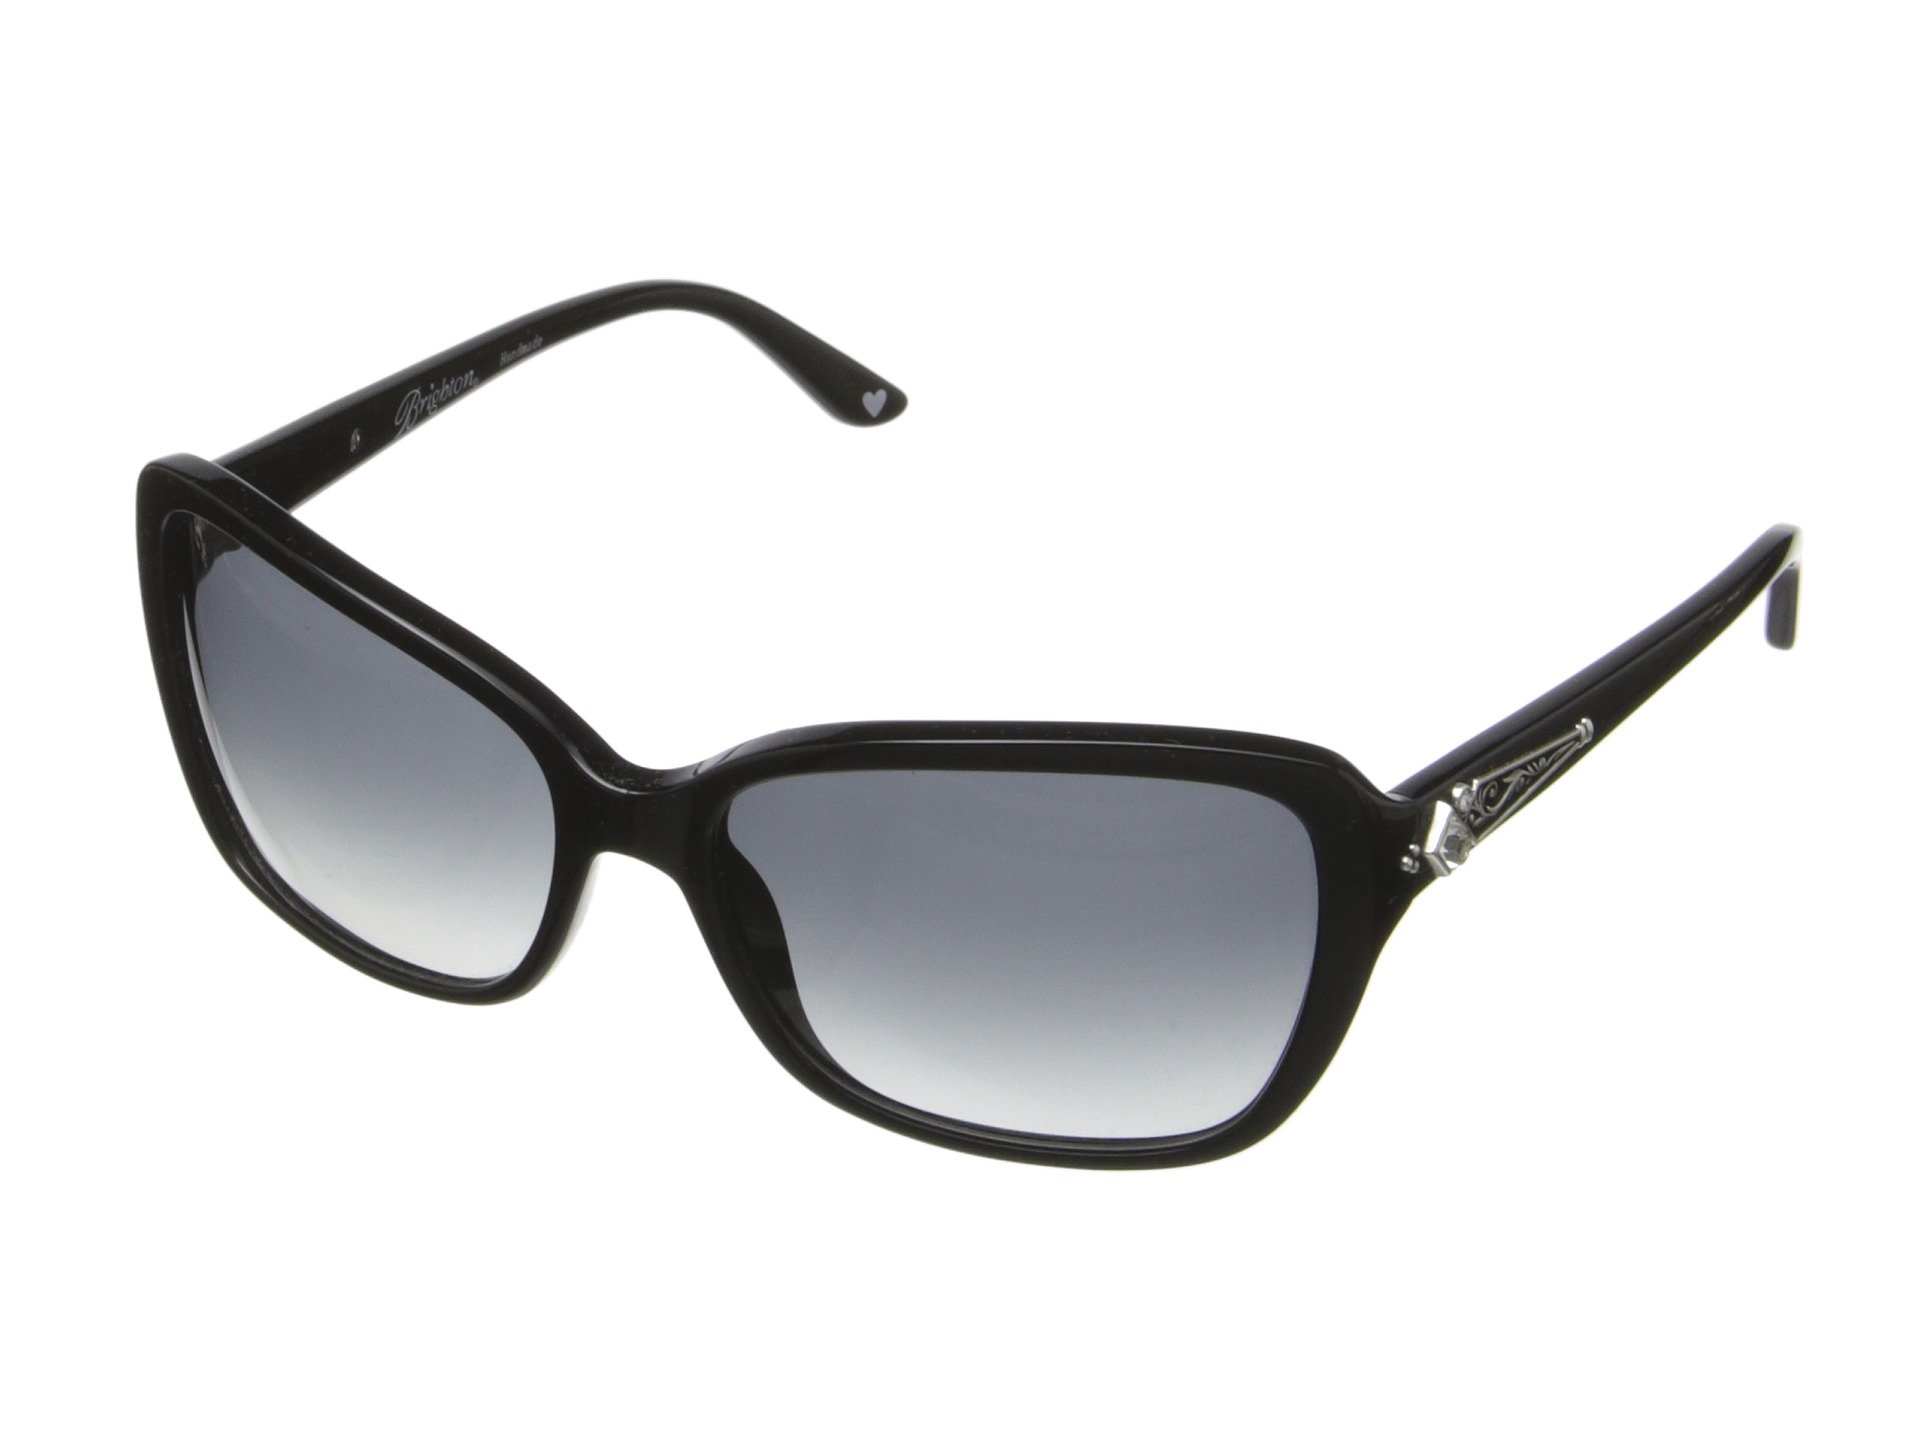 brighton one day sunglasses shipped free at zappos